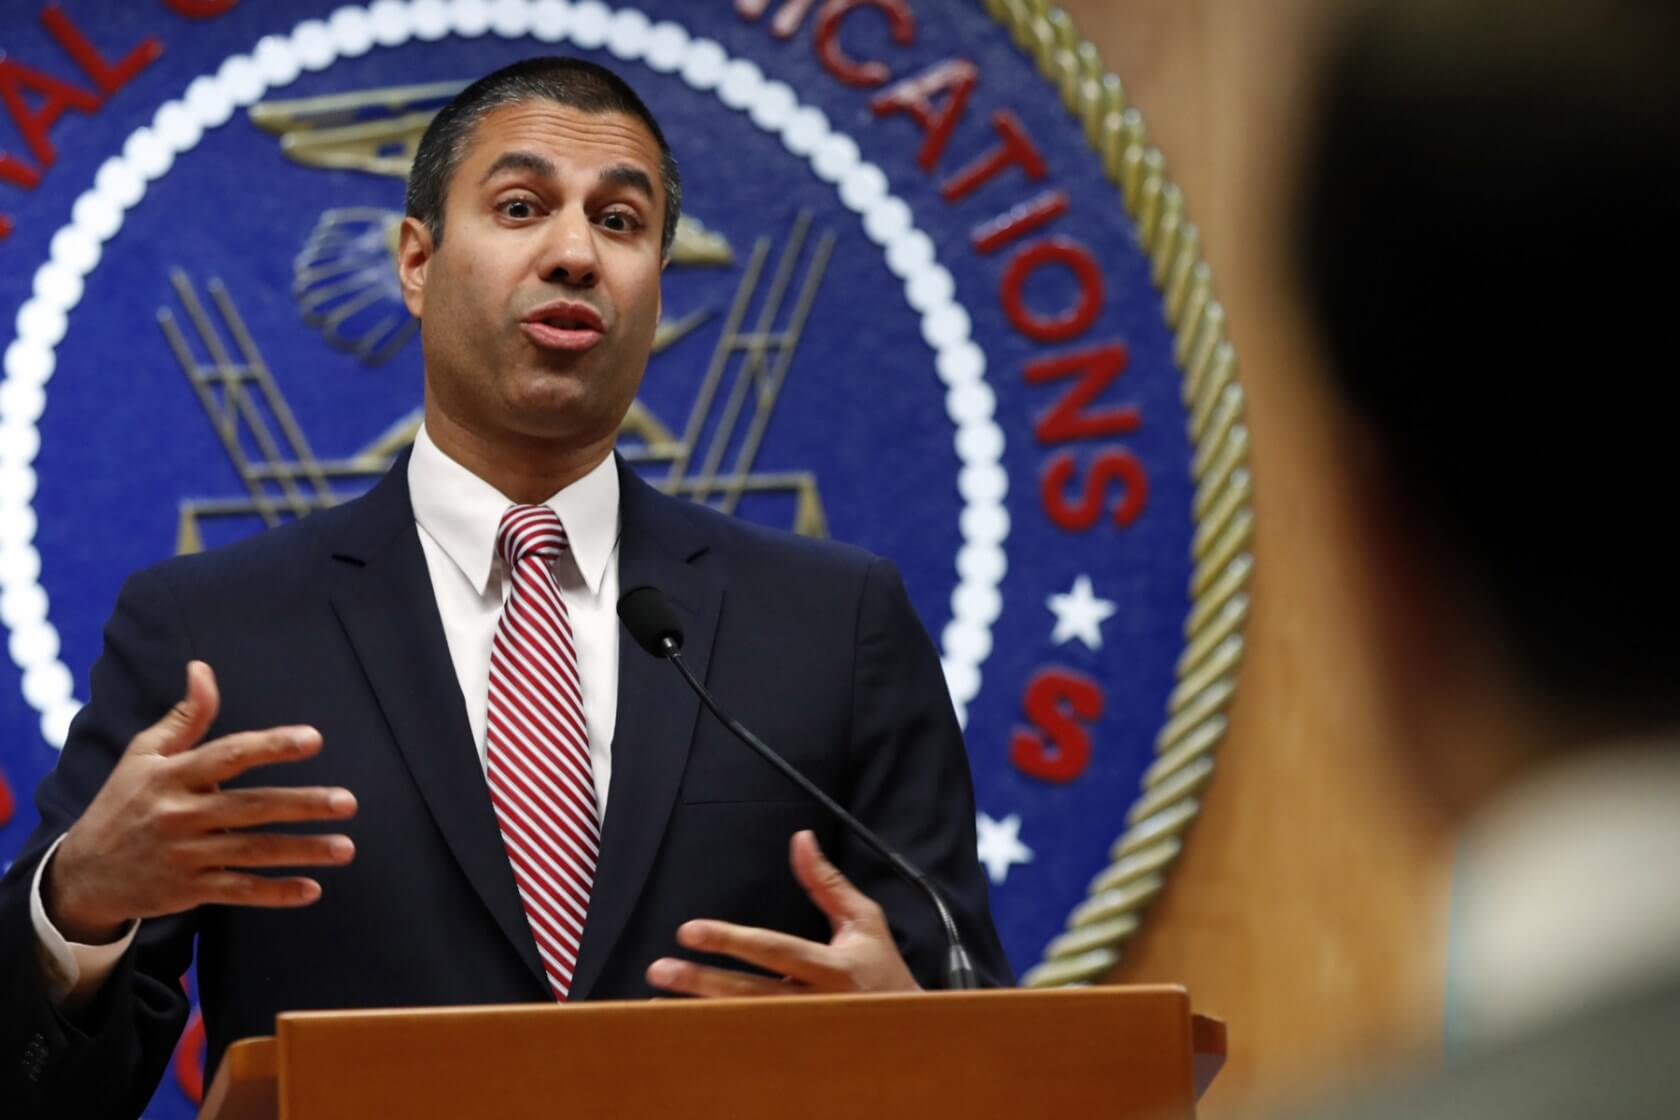 FCC order says Sinclair request on Tribune may 'involve deception'